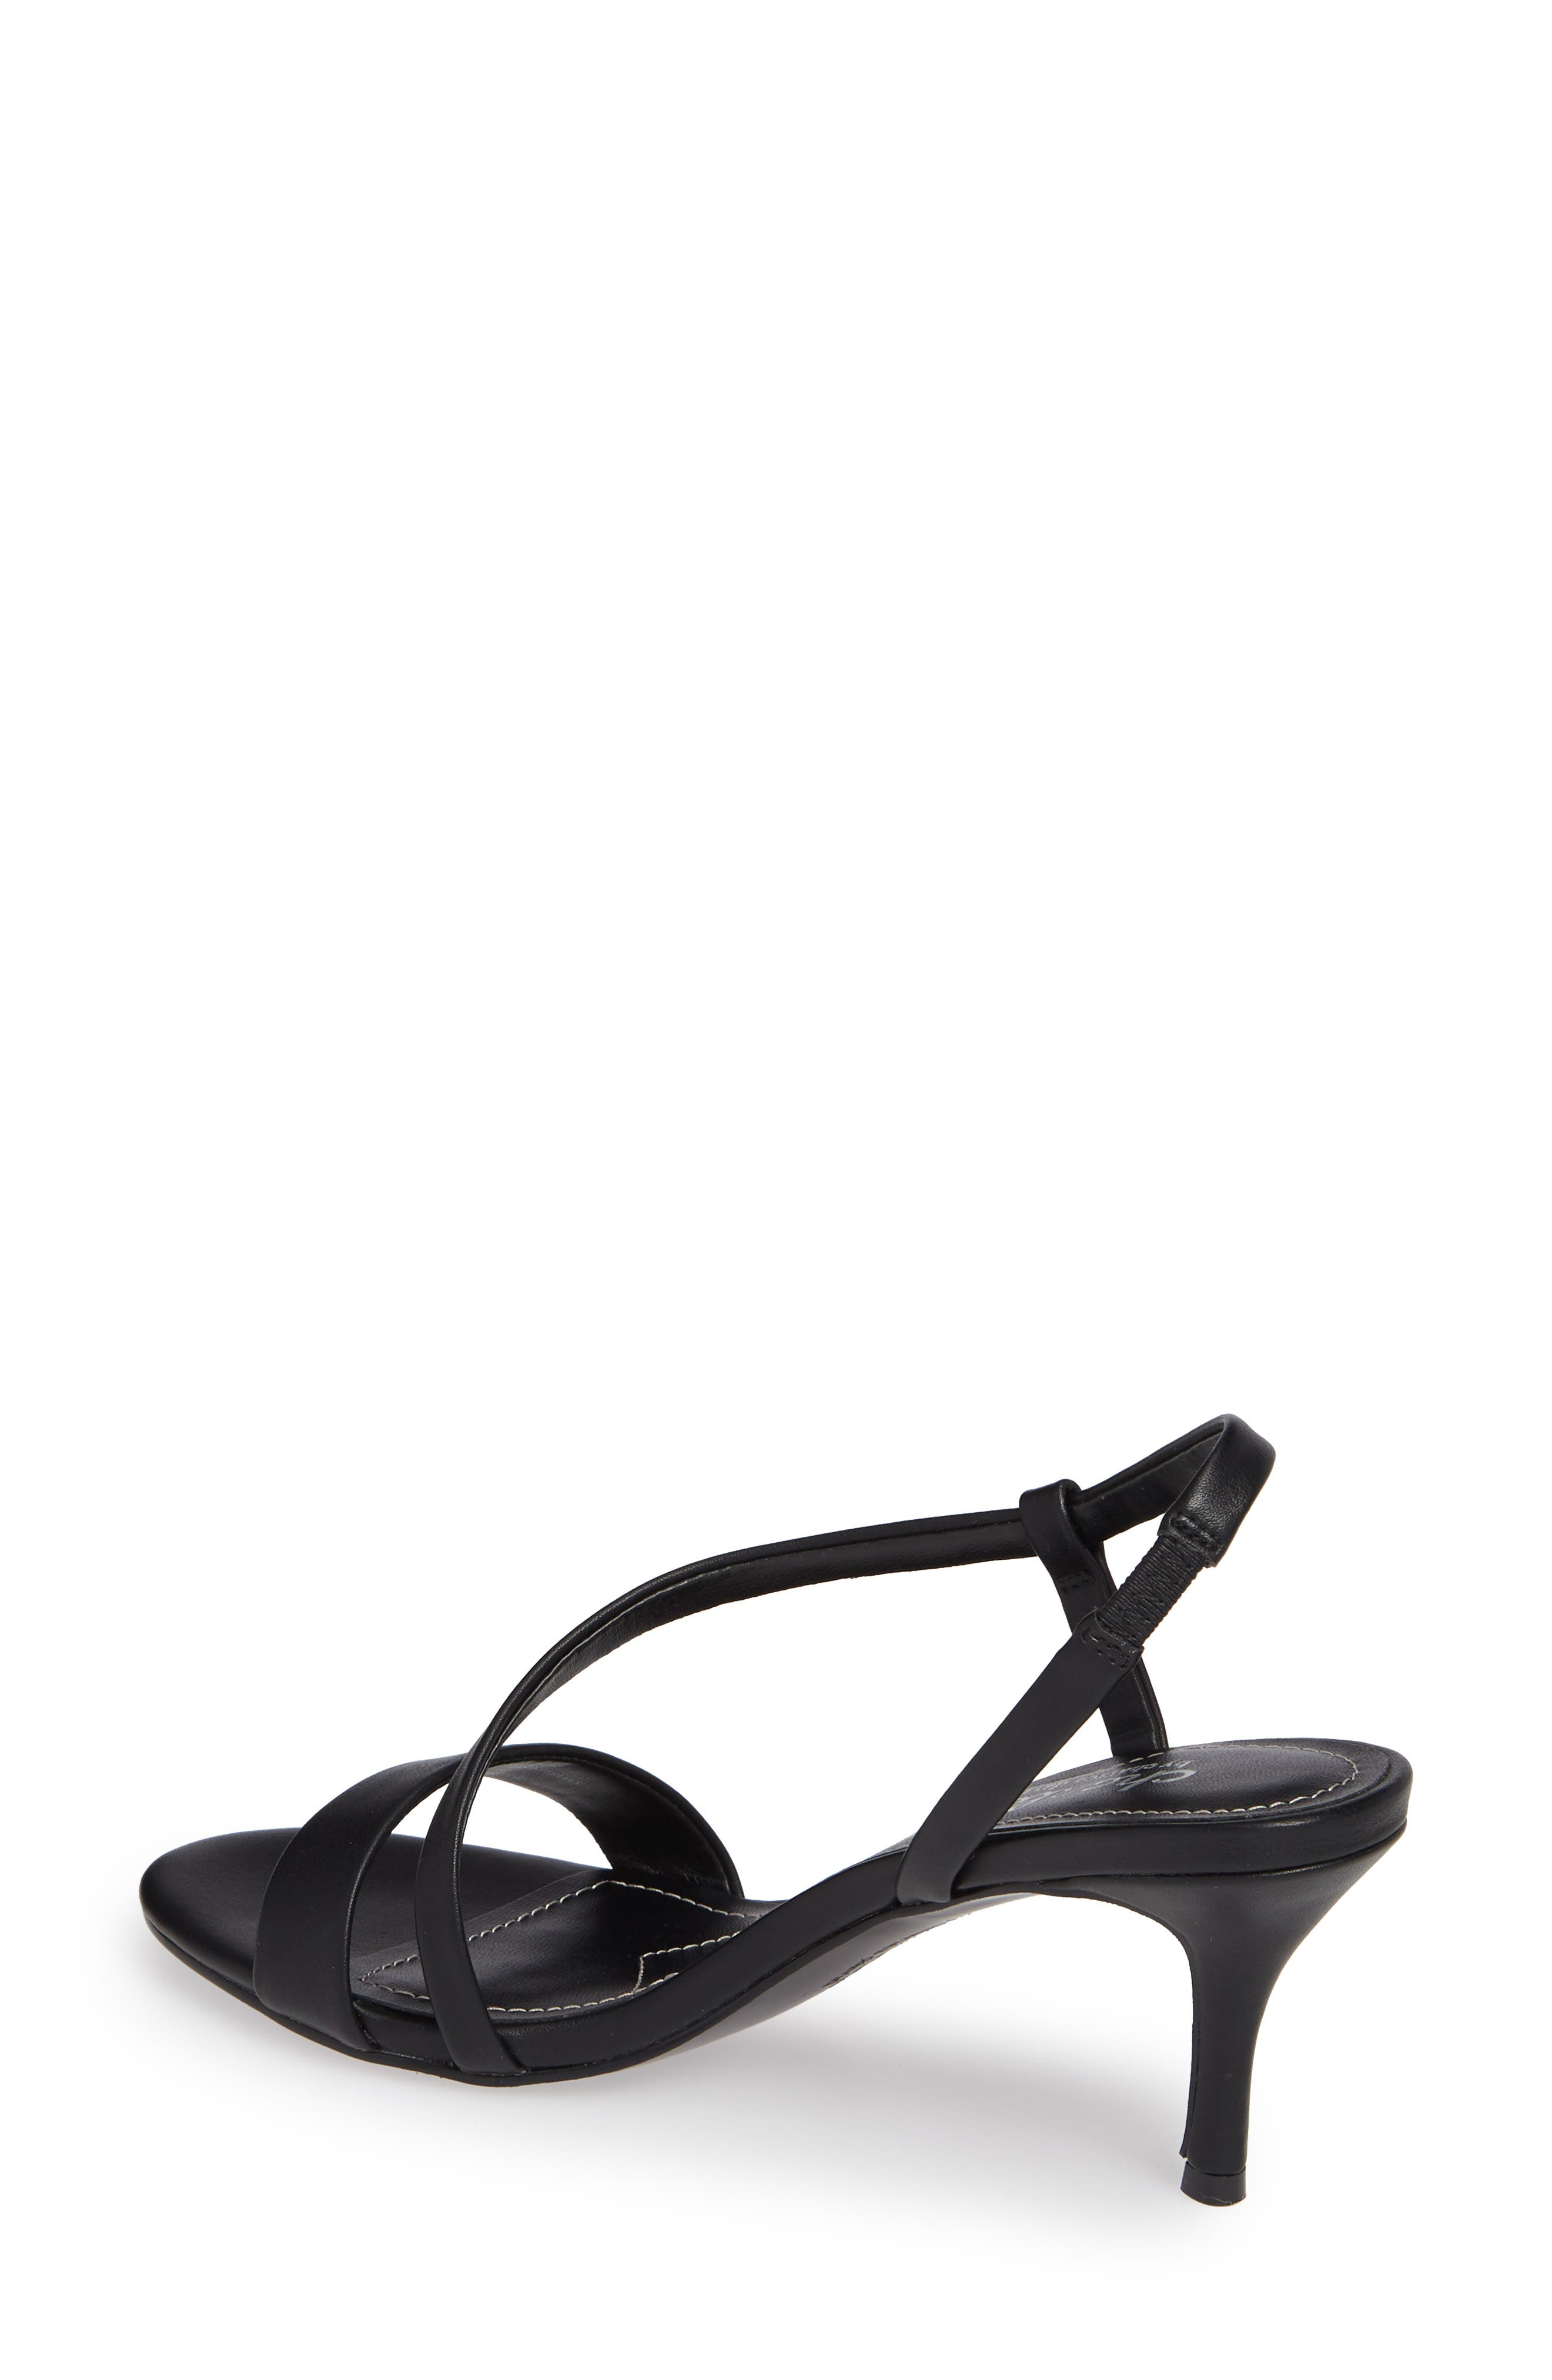 CHARLES BY CHARLES DAVID, Bermuda Asymmetrical Sandal, Alternate thumbnail 2, color, BLACK FAUX LEATHER